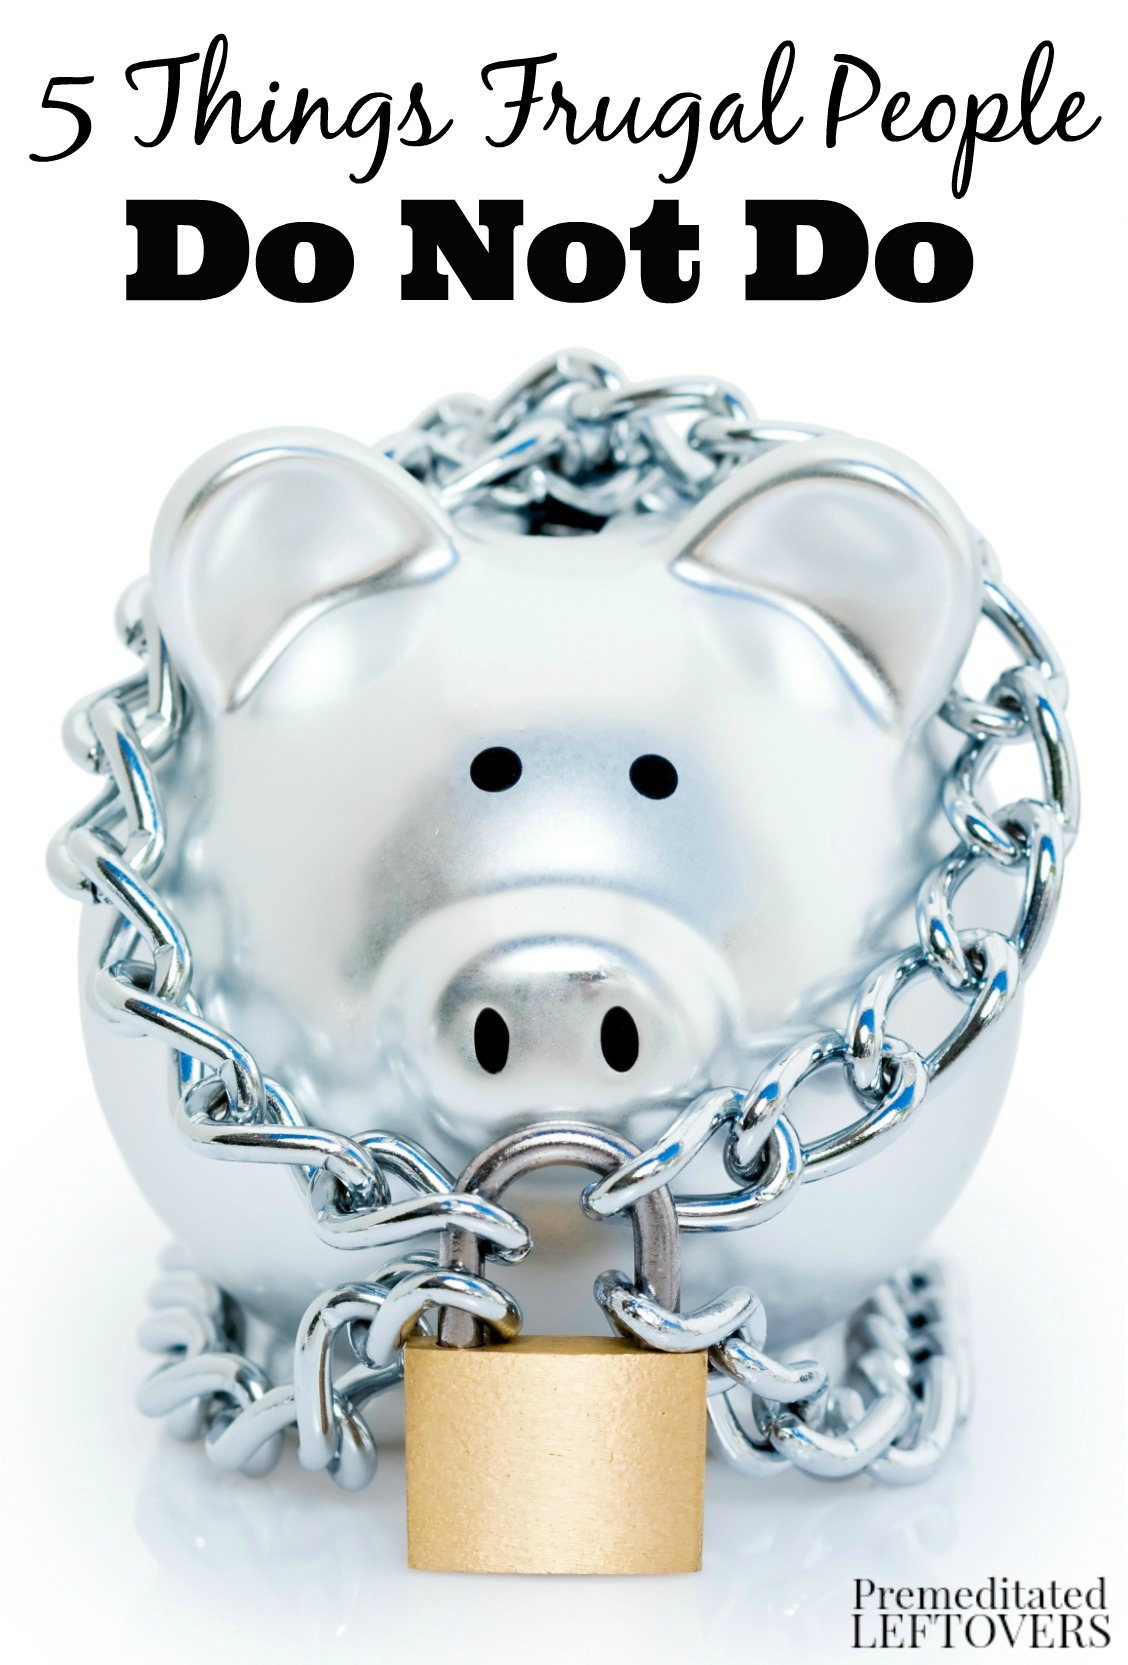 5 Things Frugal People Do Not Do- Here are 5 things that people who live frugally just don't do. See how much money you can save by choosing to NOT do them.